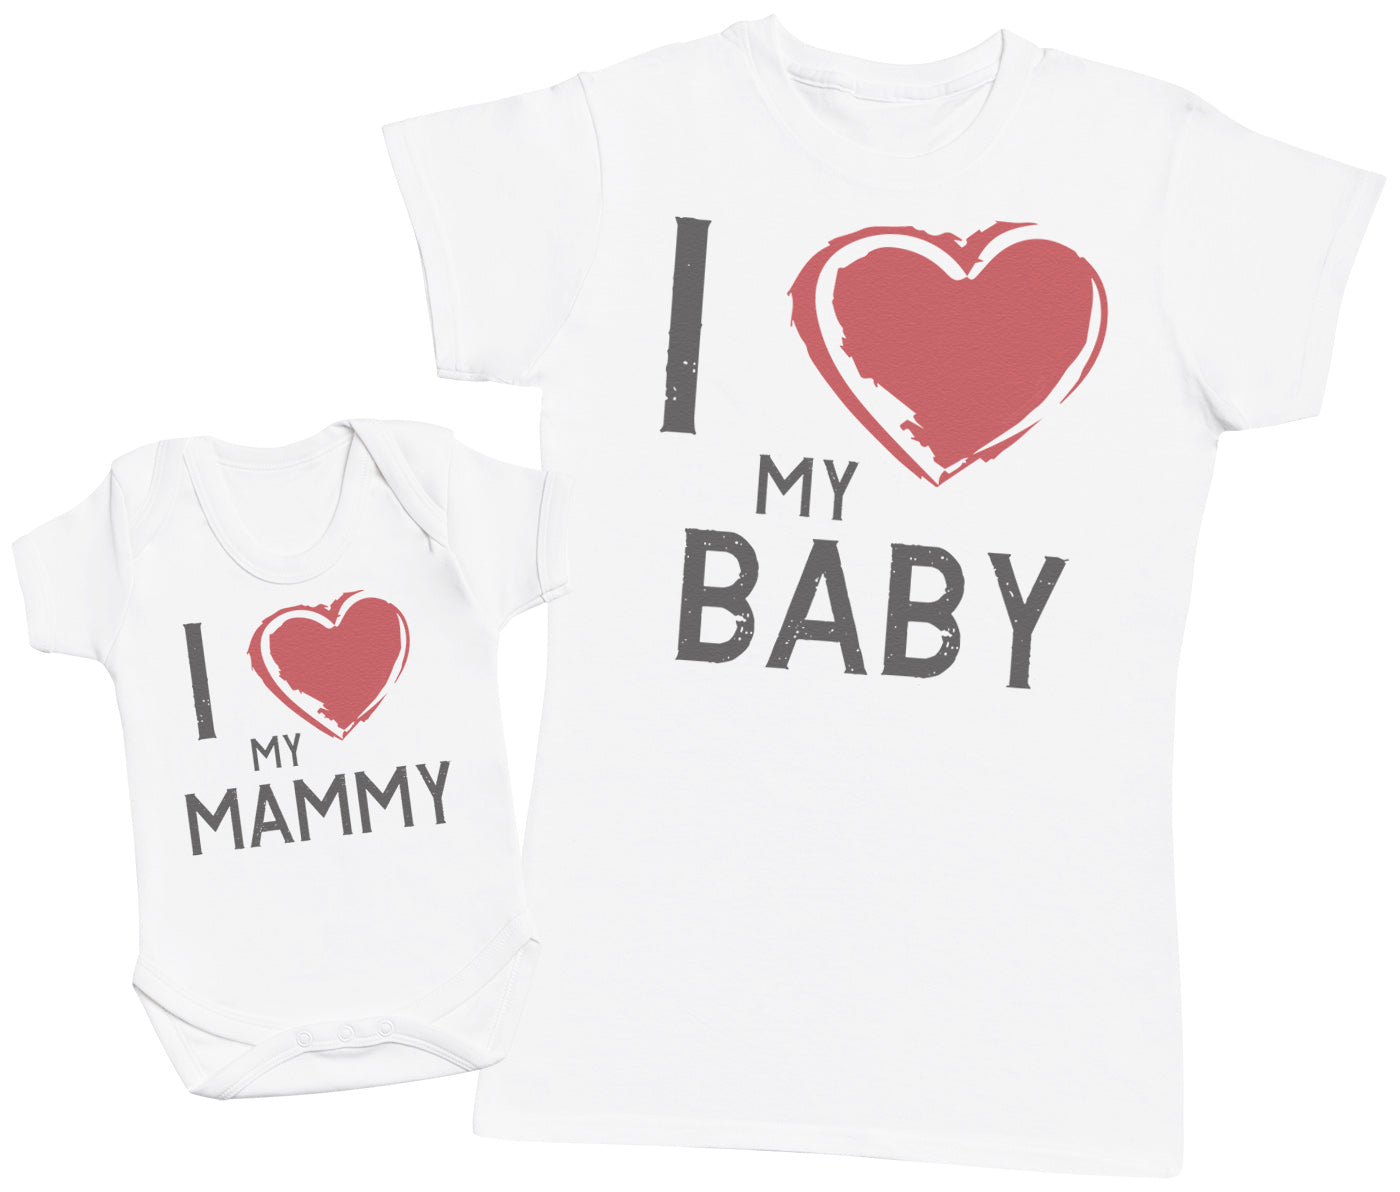 I Love My Mammy & Baby - Womens T Shirt & Baby Bodysuit